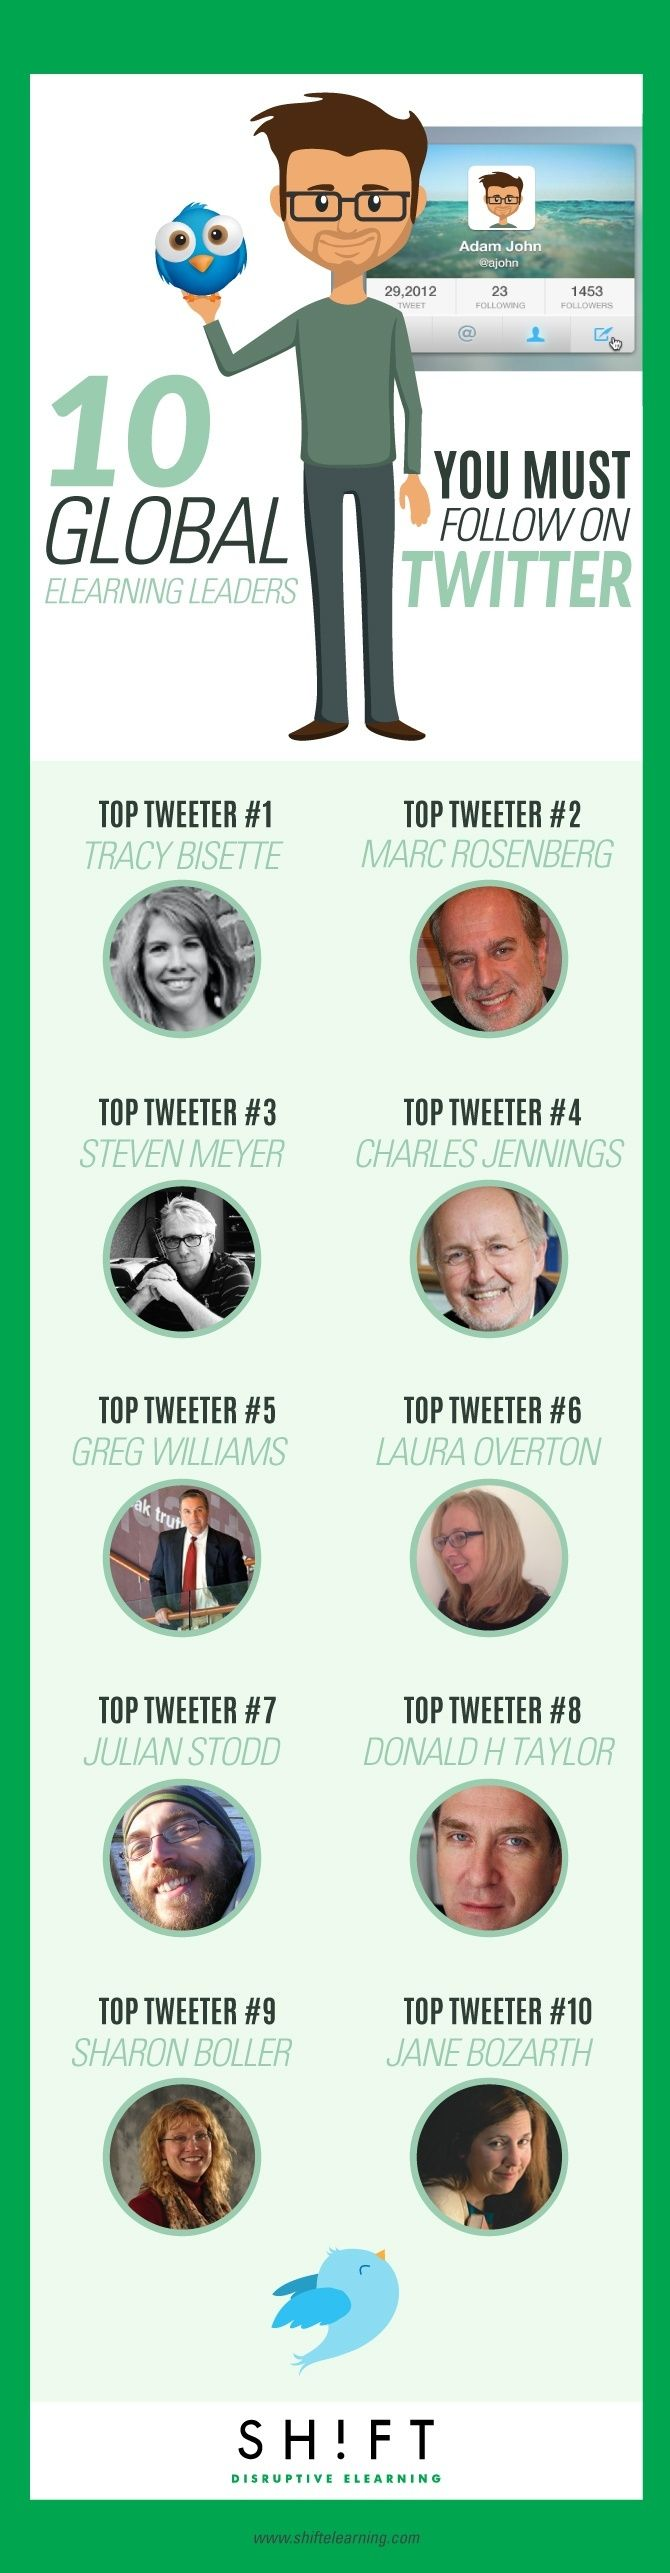 eLearning Leaders You Must Follow on Twitter Infographic